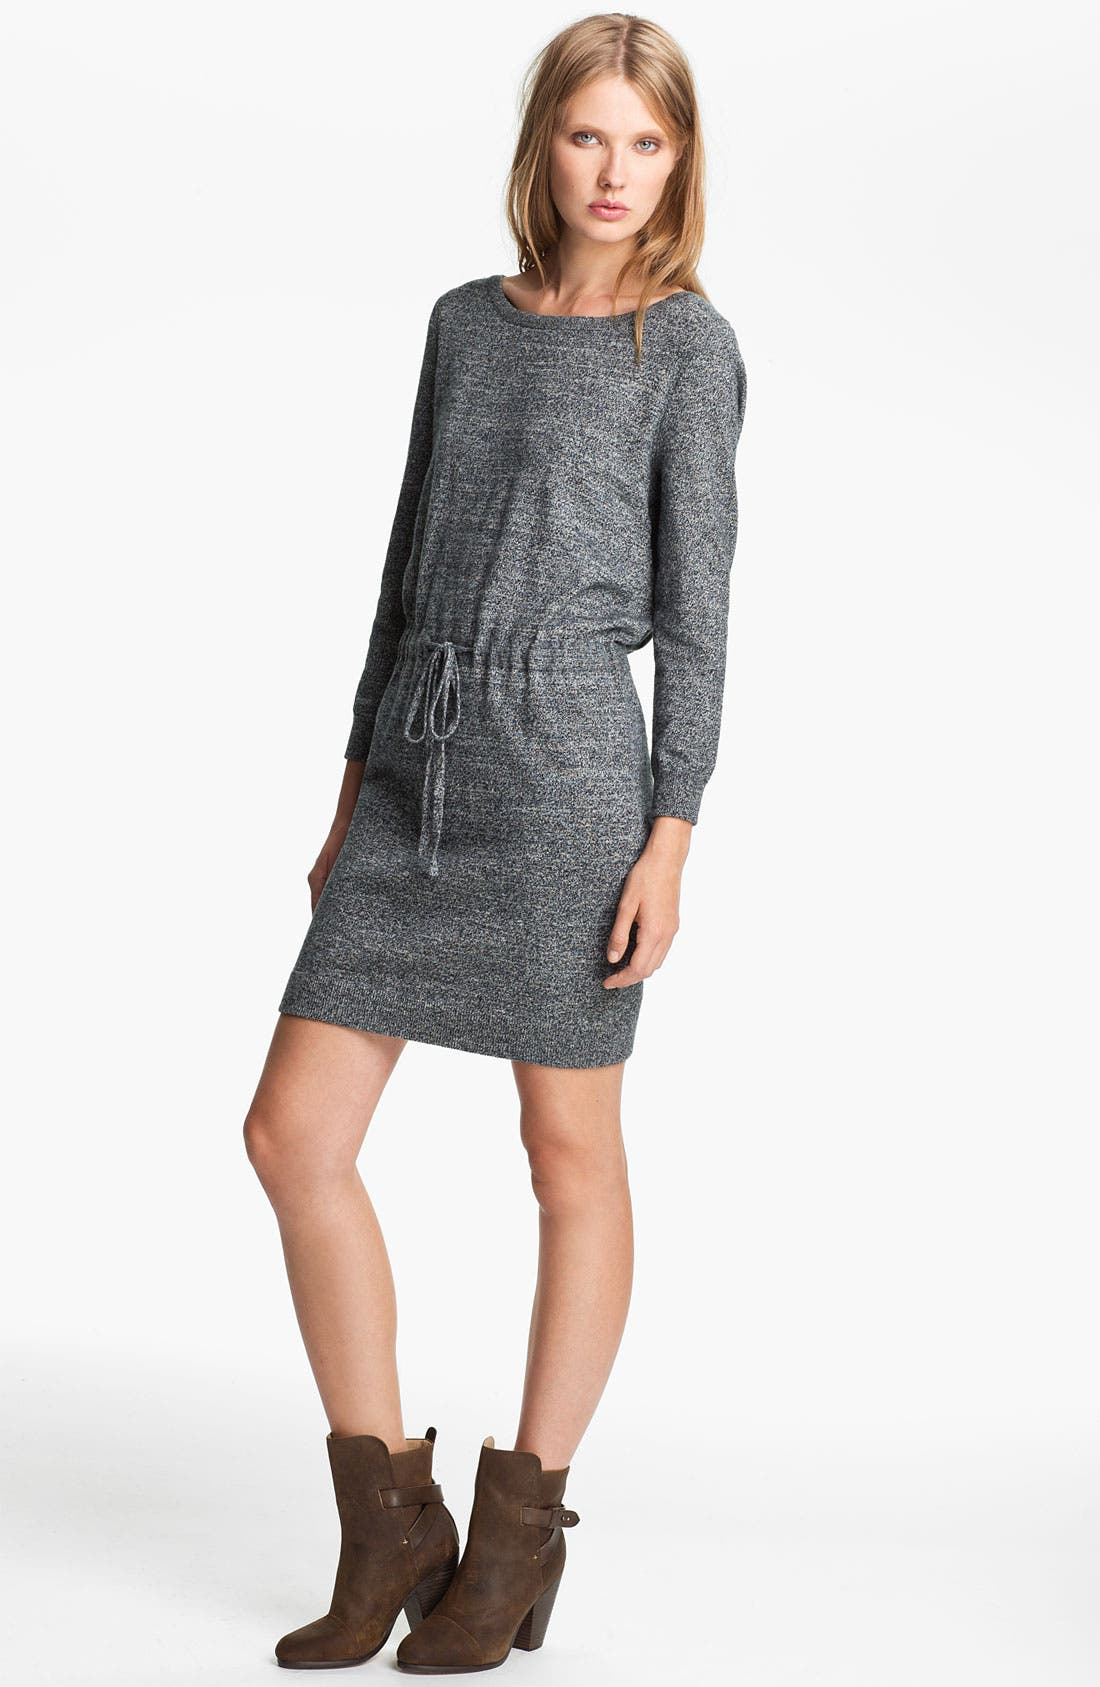 Alternate Image 1 Selected - rag & bone 'Dunn' Knit Dress